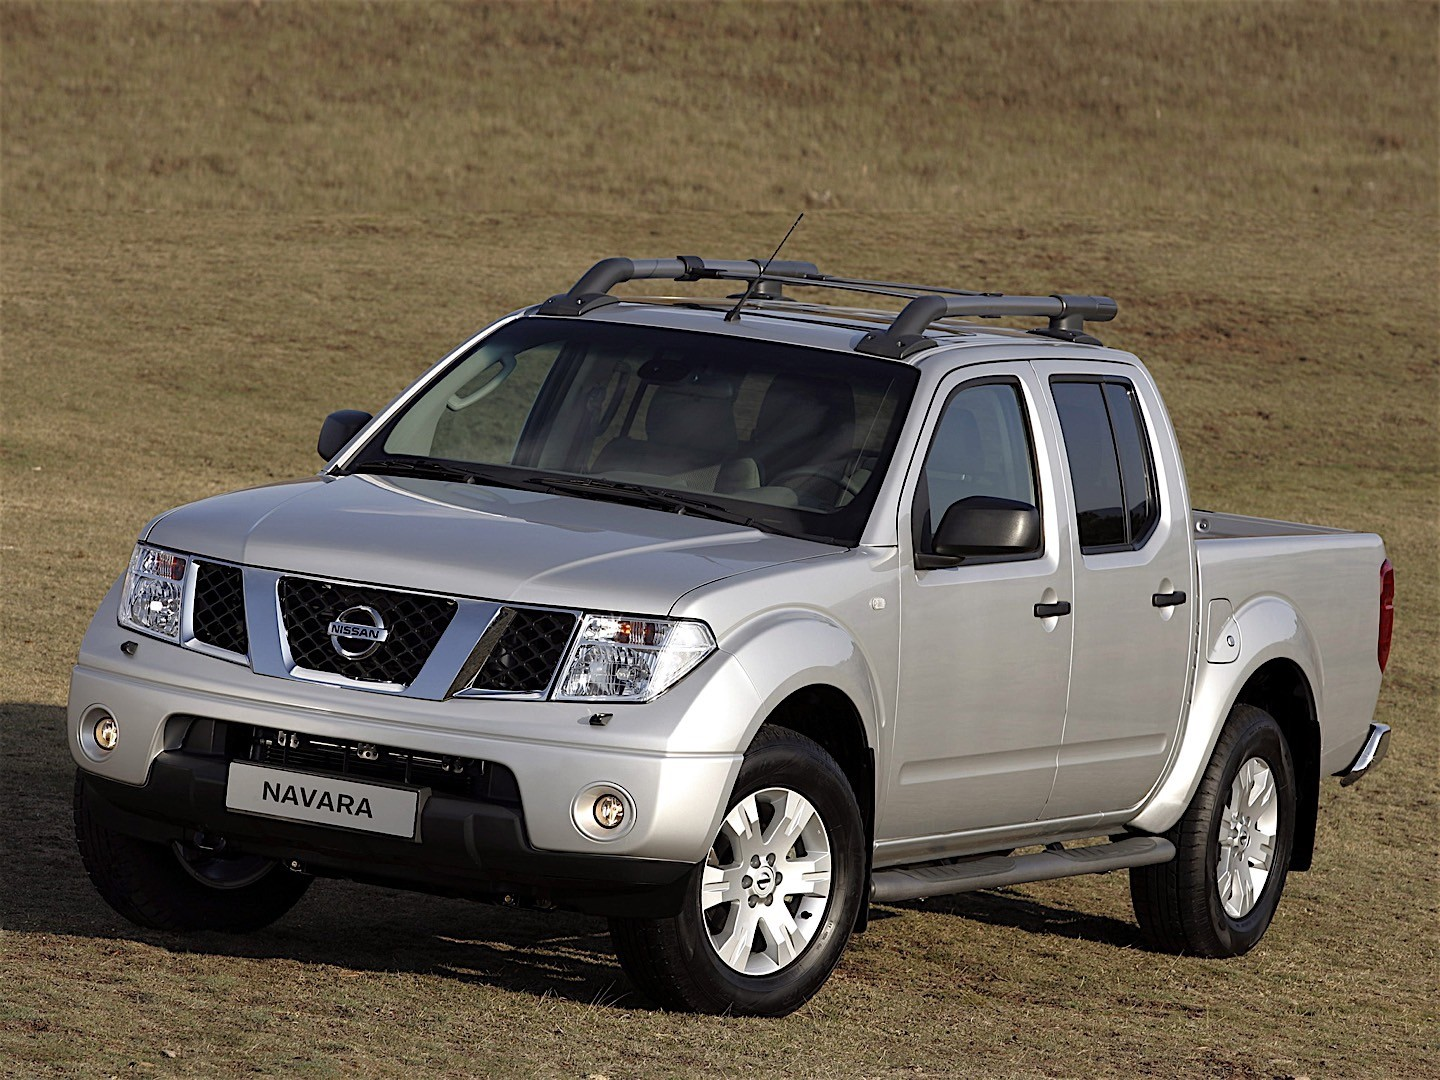 nissan navara frontier double cab specs photos 2005. Black Bedroom Furniture Sets. Home Design Ideas